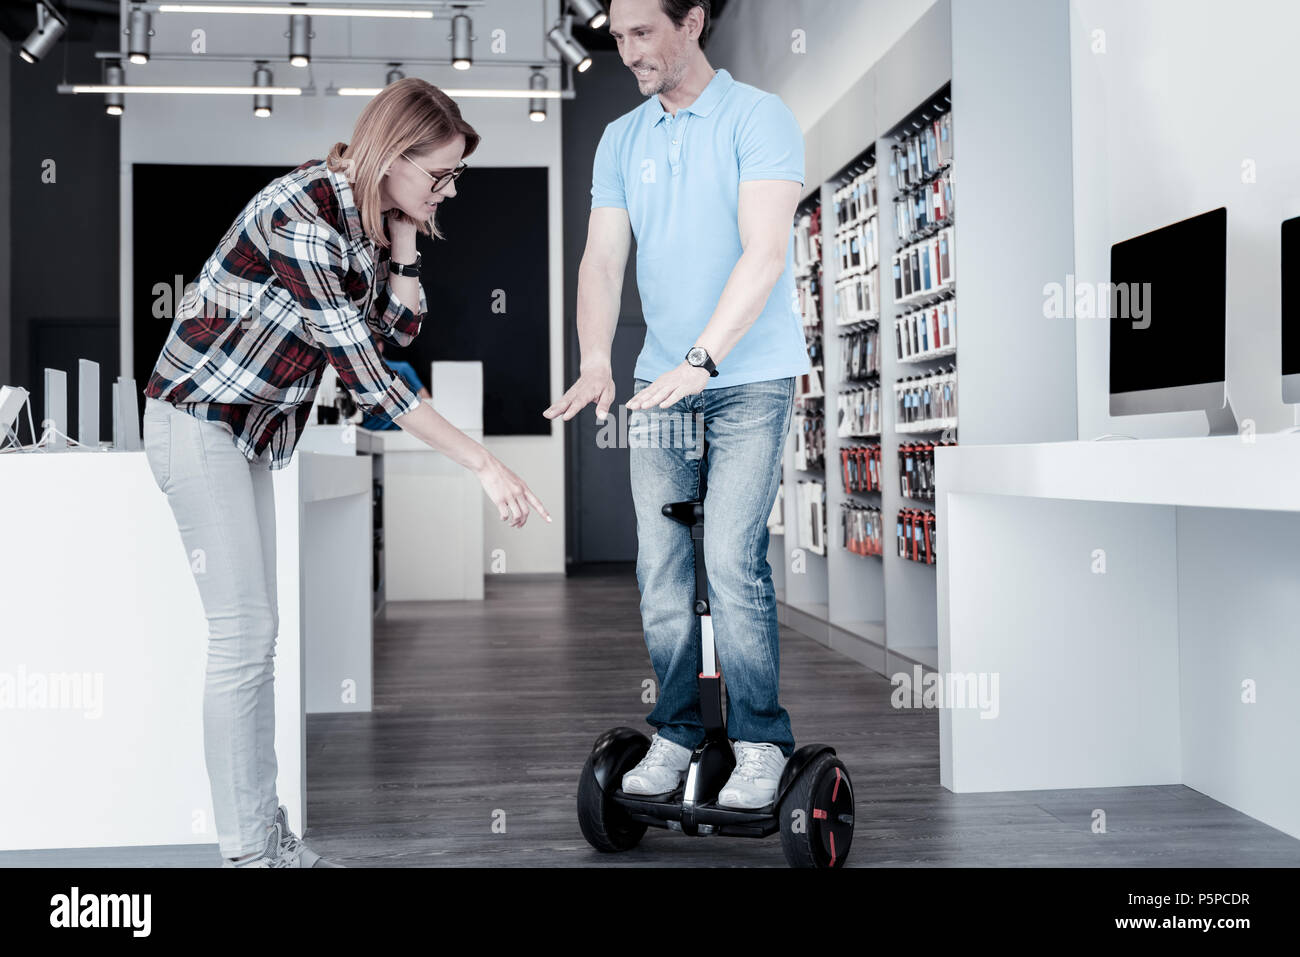 Shop assistant demonstrating a self balancing scooter - Stock Image